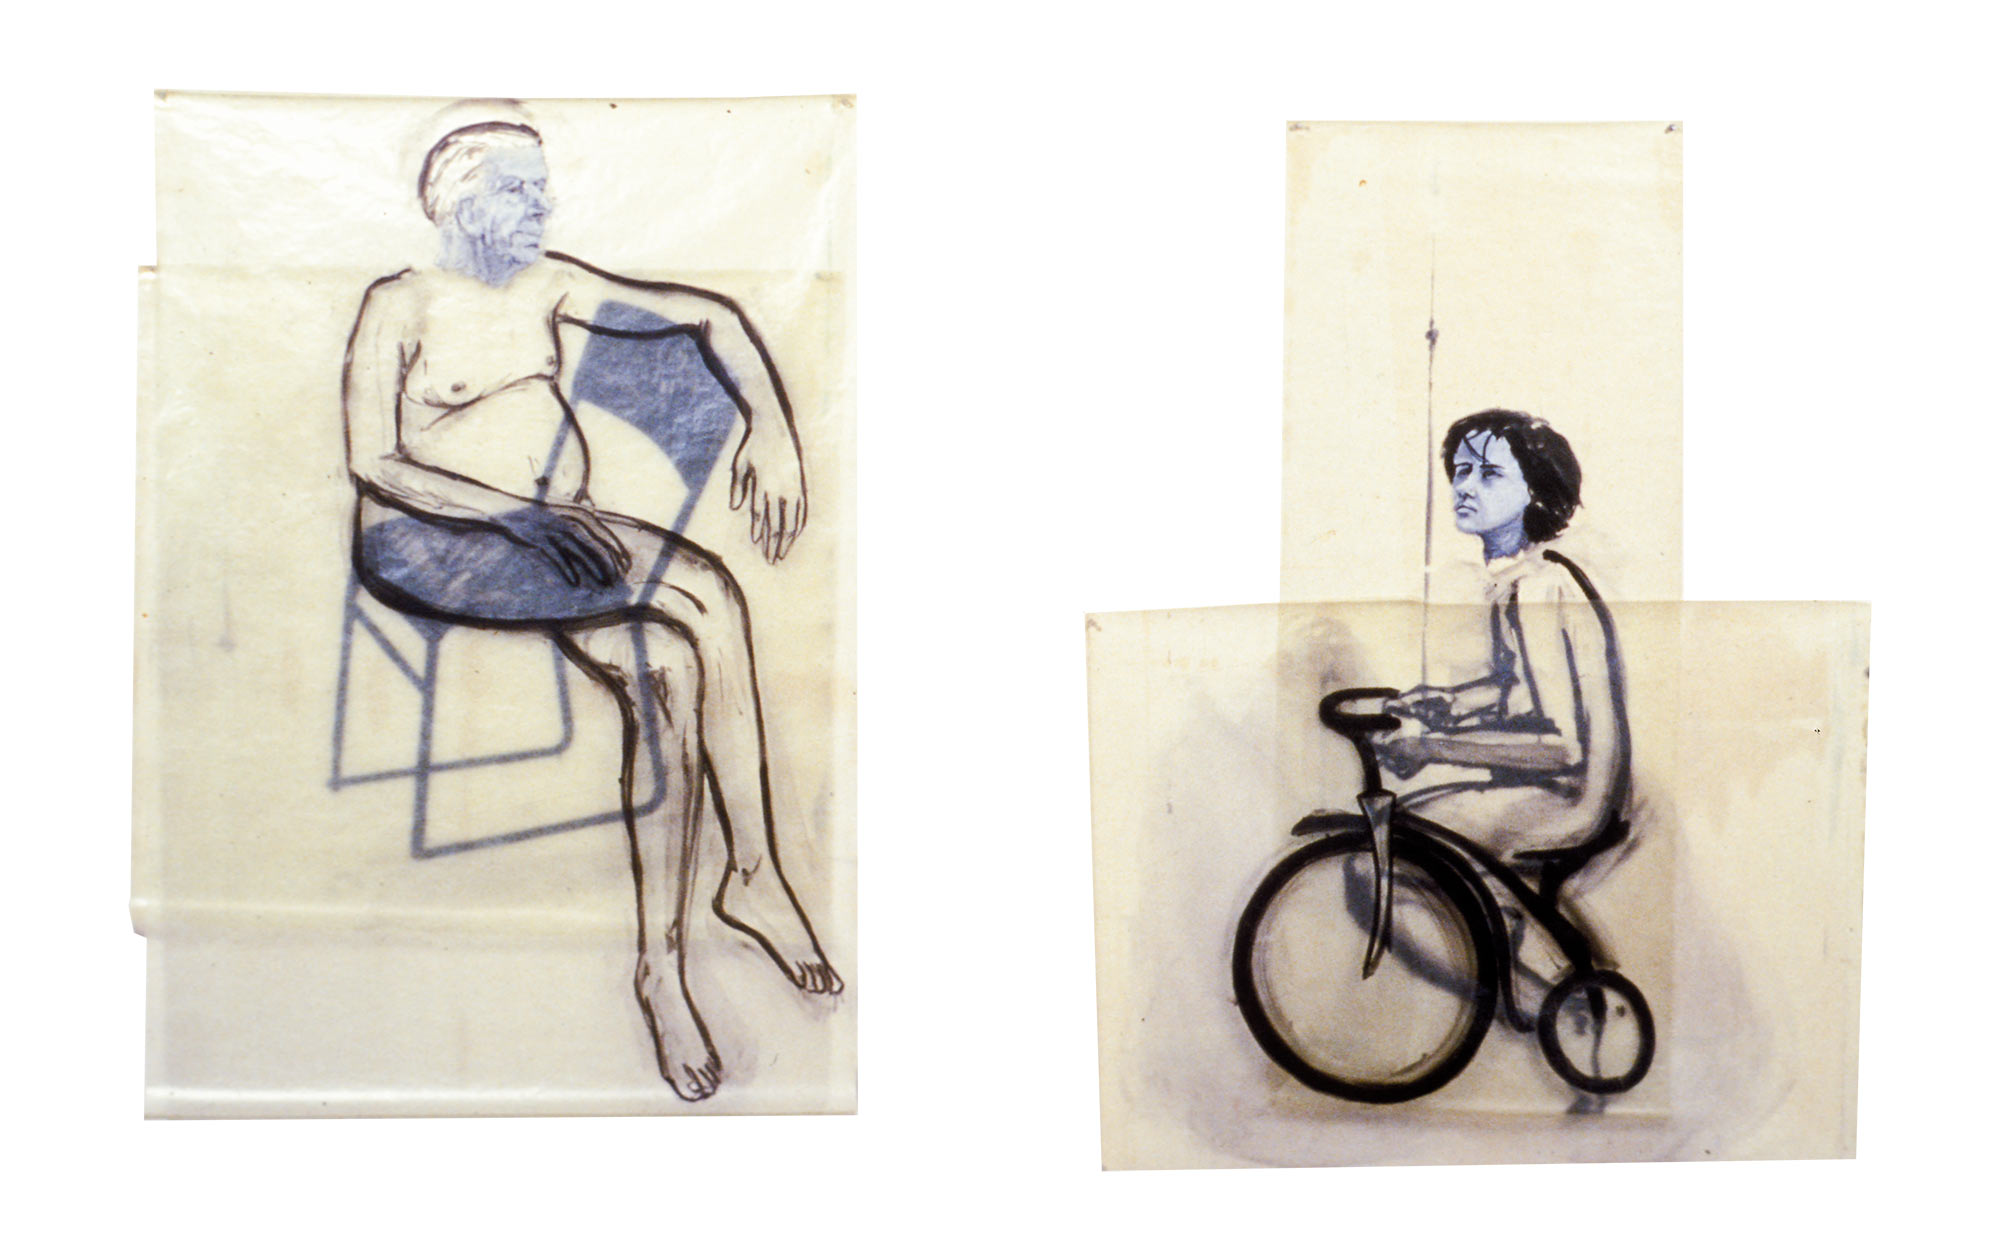 Sitting/Riding, 1978. Oil on Glassine.